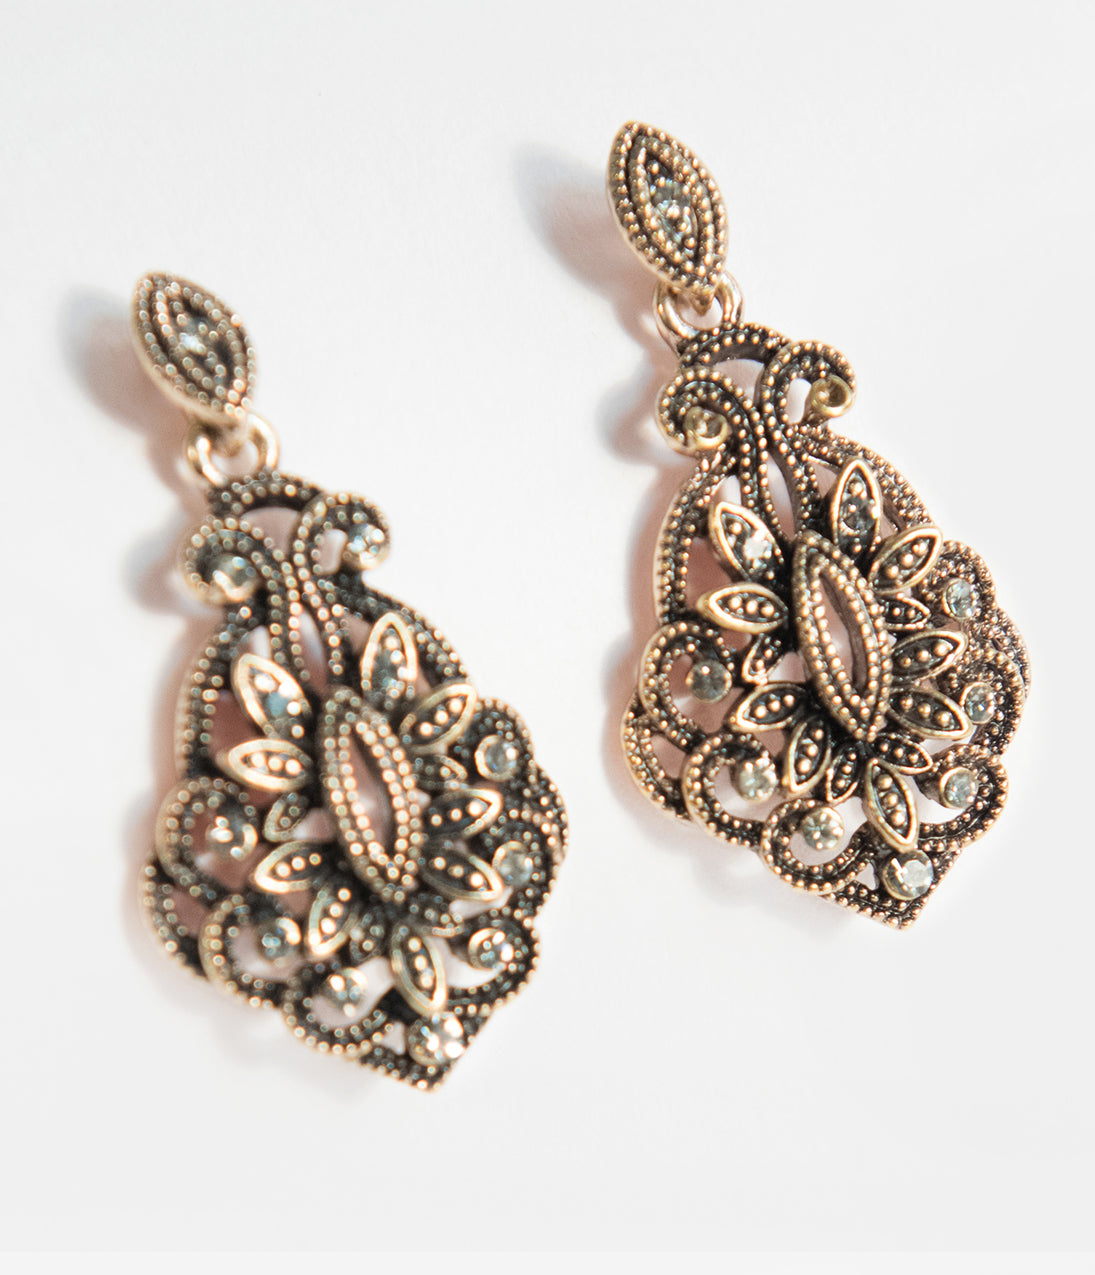 1920s Flapper Costume : How to Guide Antique Gold Deco Rhinestone Gala Drop Earrings $26.00 AT vintagedancer.com